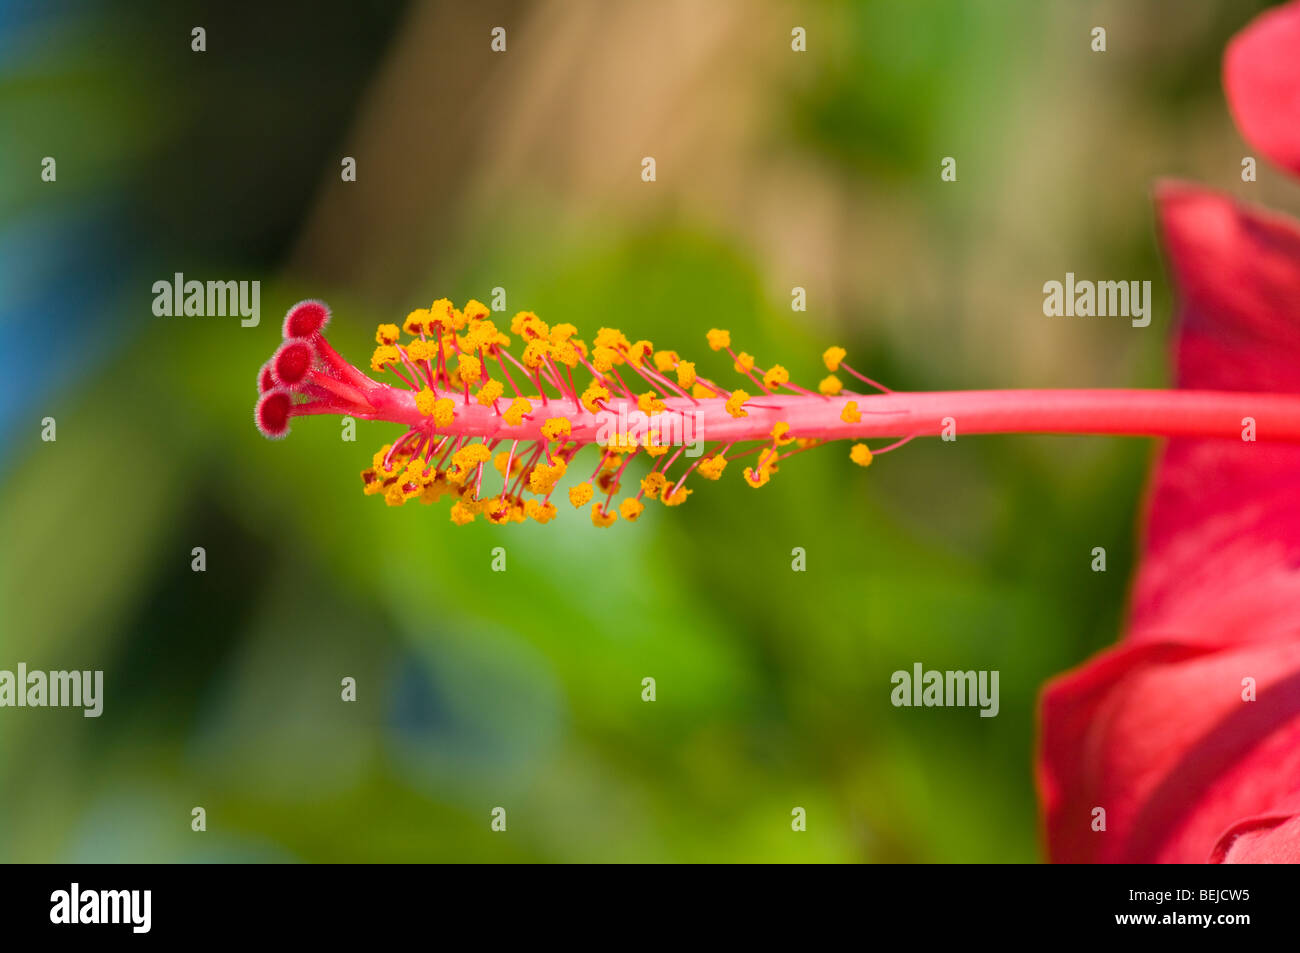 The Pistil and Stamens Of A Red Hibiscus Flower Stock Photo